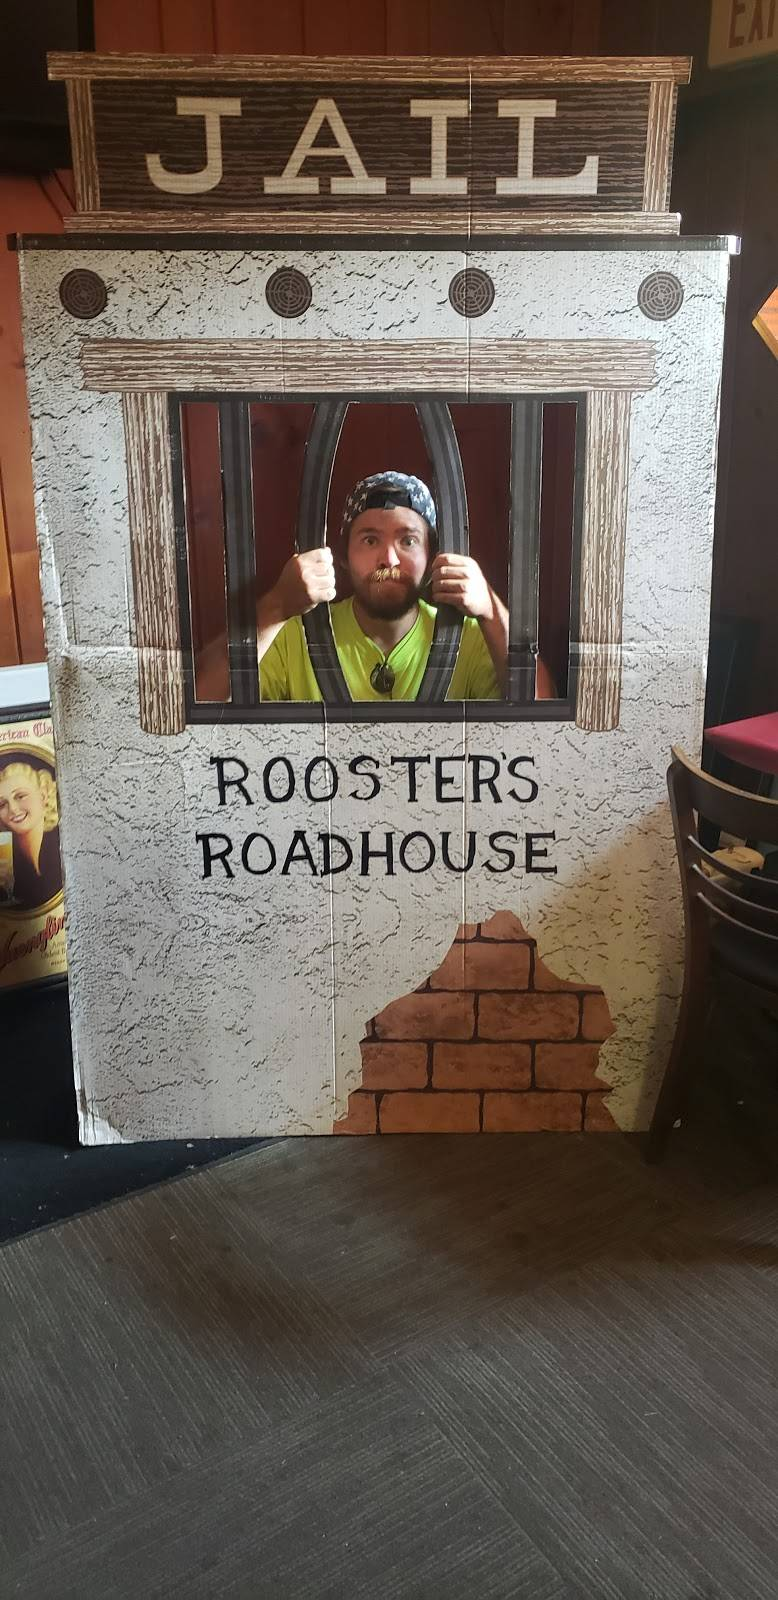 Roosters Roadhouse | restaurant | 5021 Thoms Run Rd, Oakdale, PA 15071, USA | 4122211543 OR +1 412-221-1543